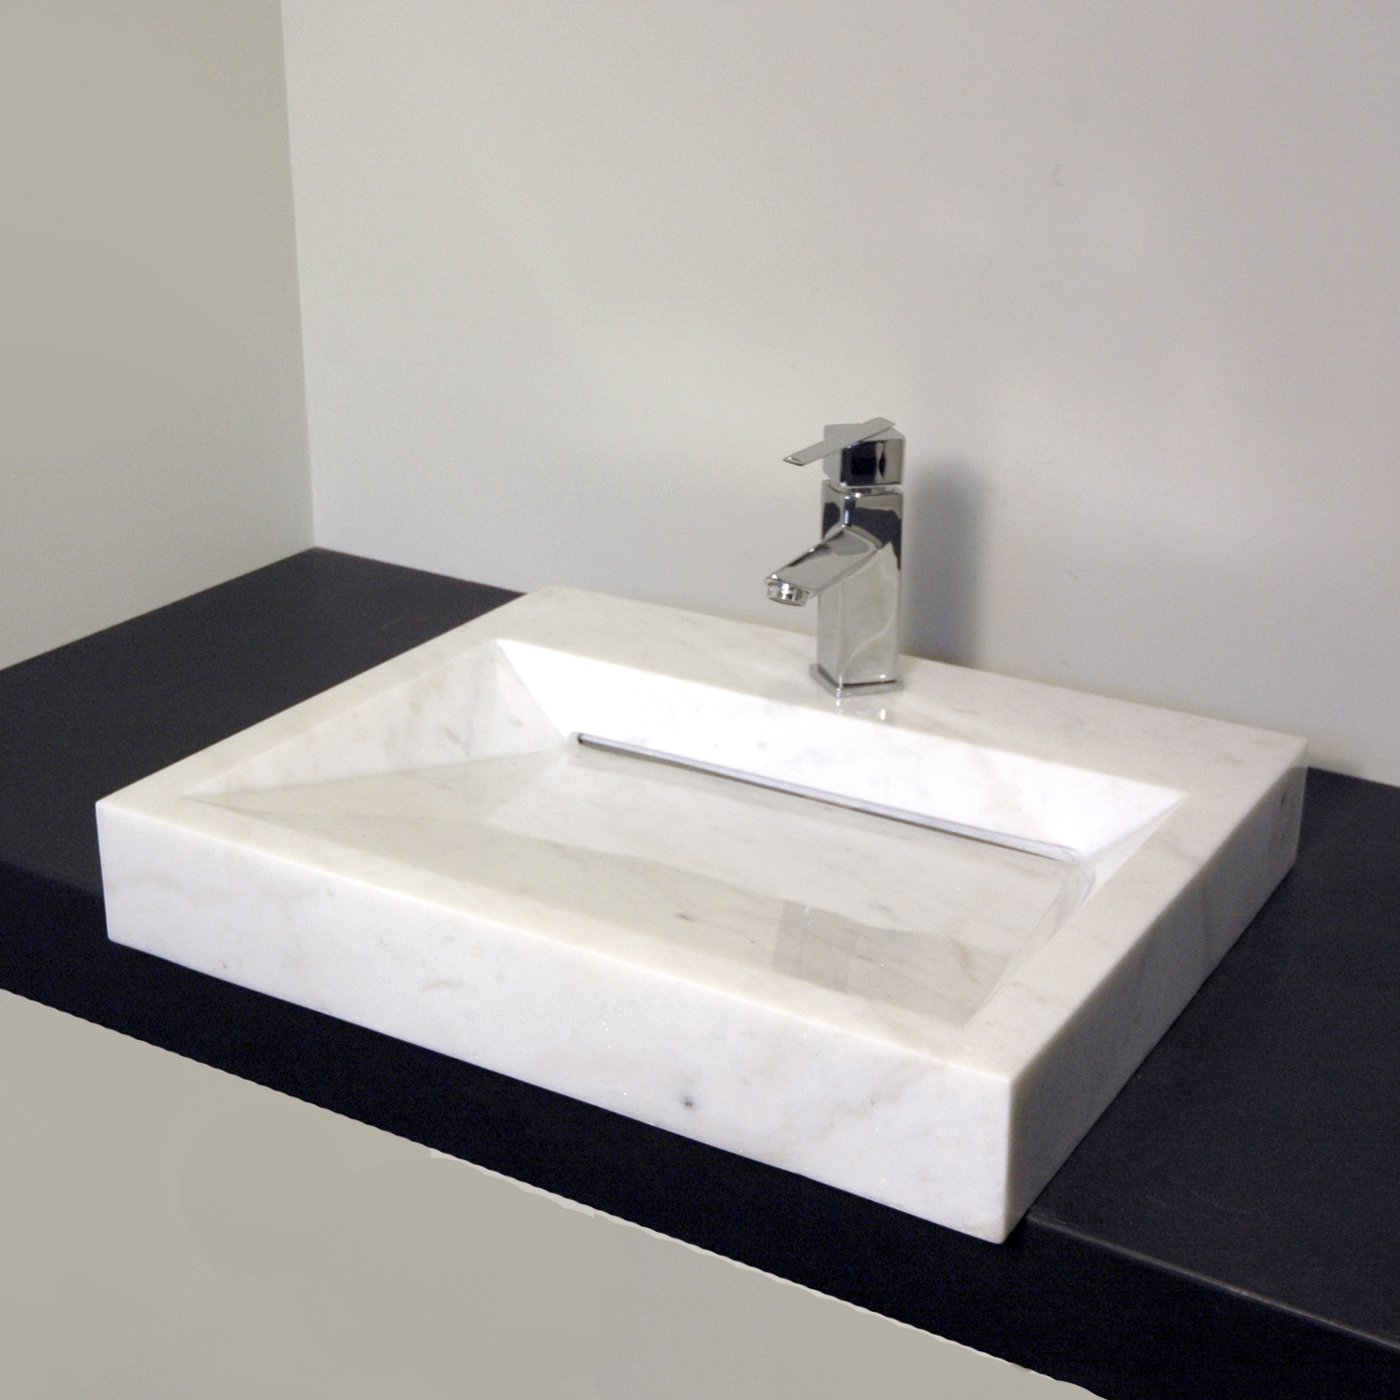 Square Bathroom Sink: Contemporary Looking Elegance ...